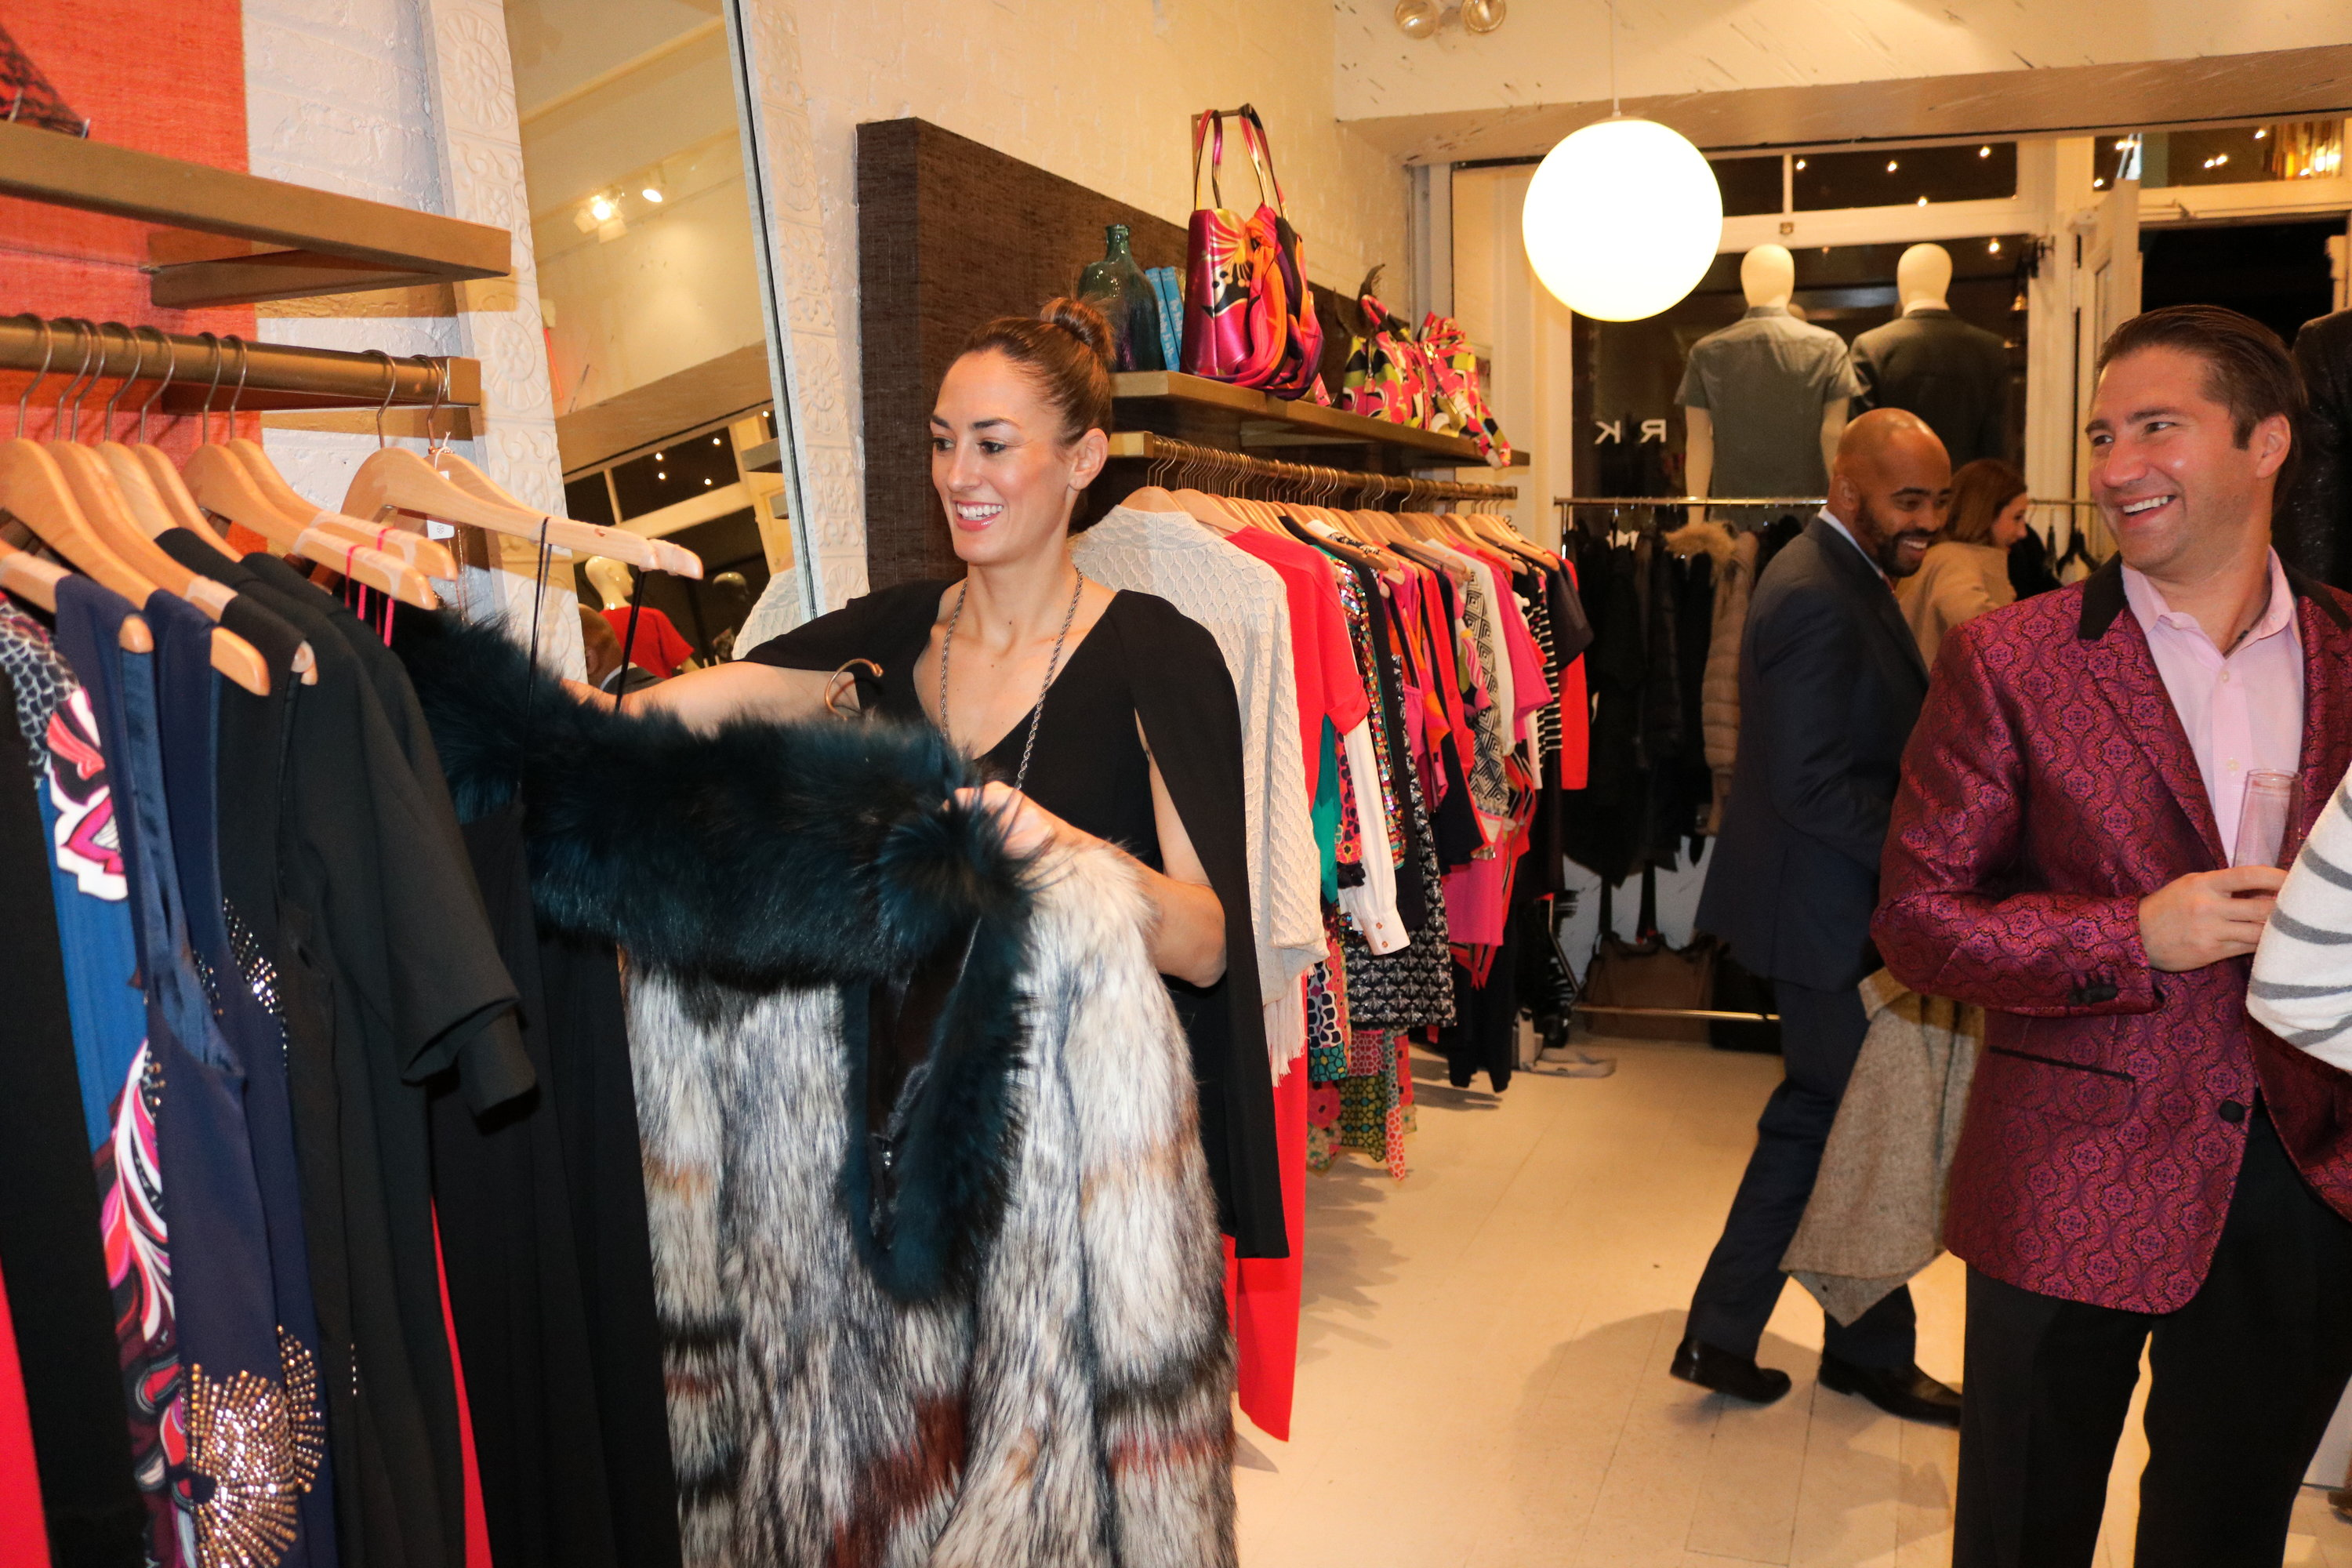 Star Mountain Charitable Foundation & Trina Turk Holiday Shopping Event (12/7/16)